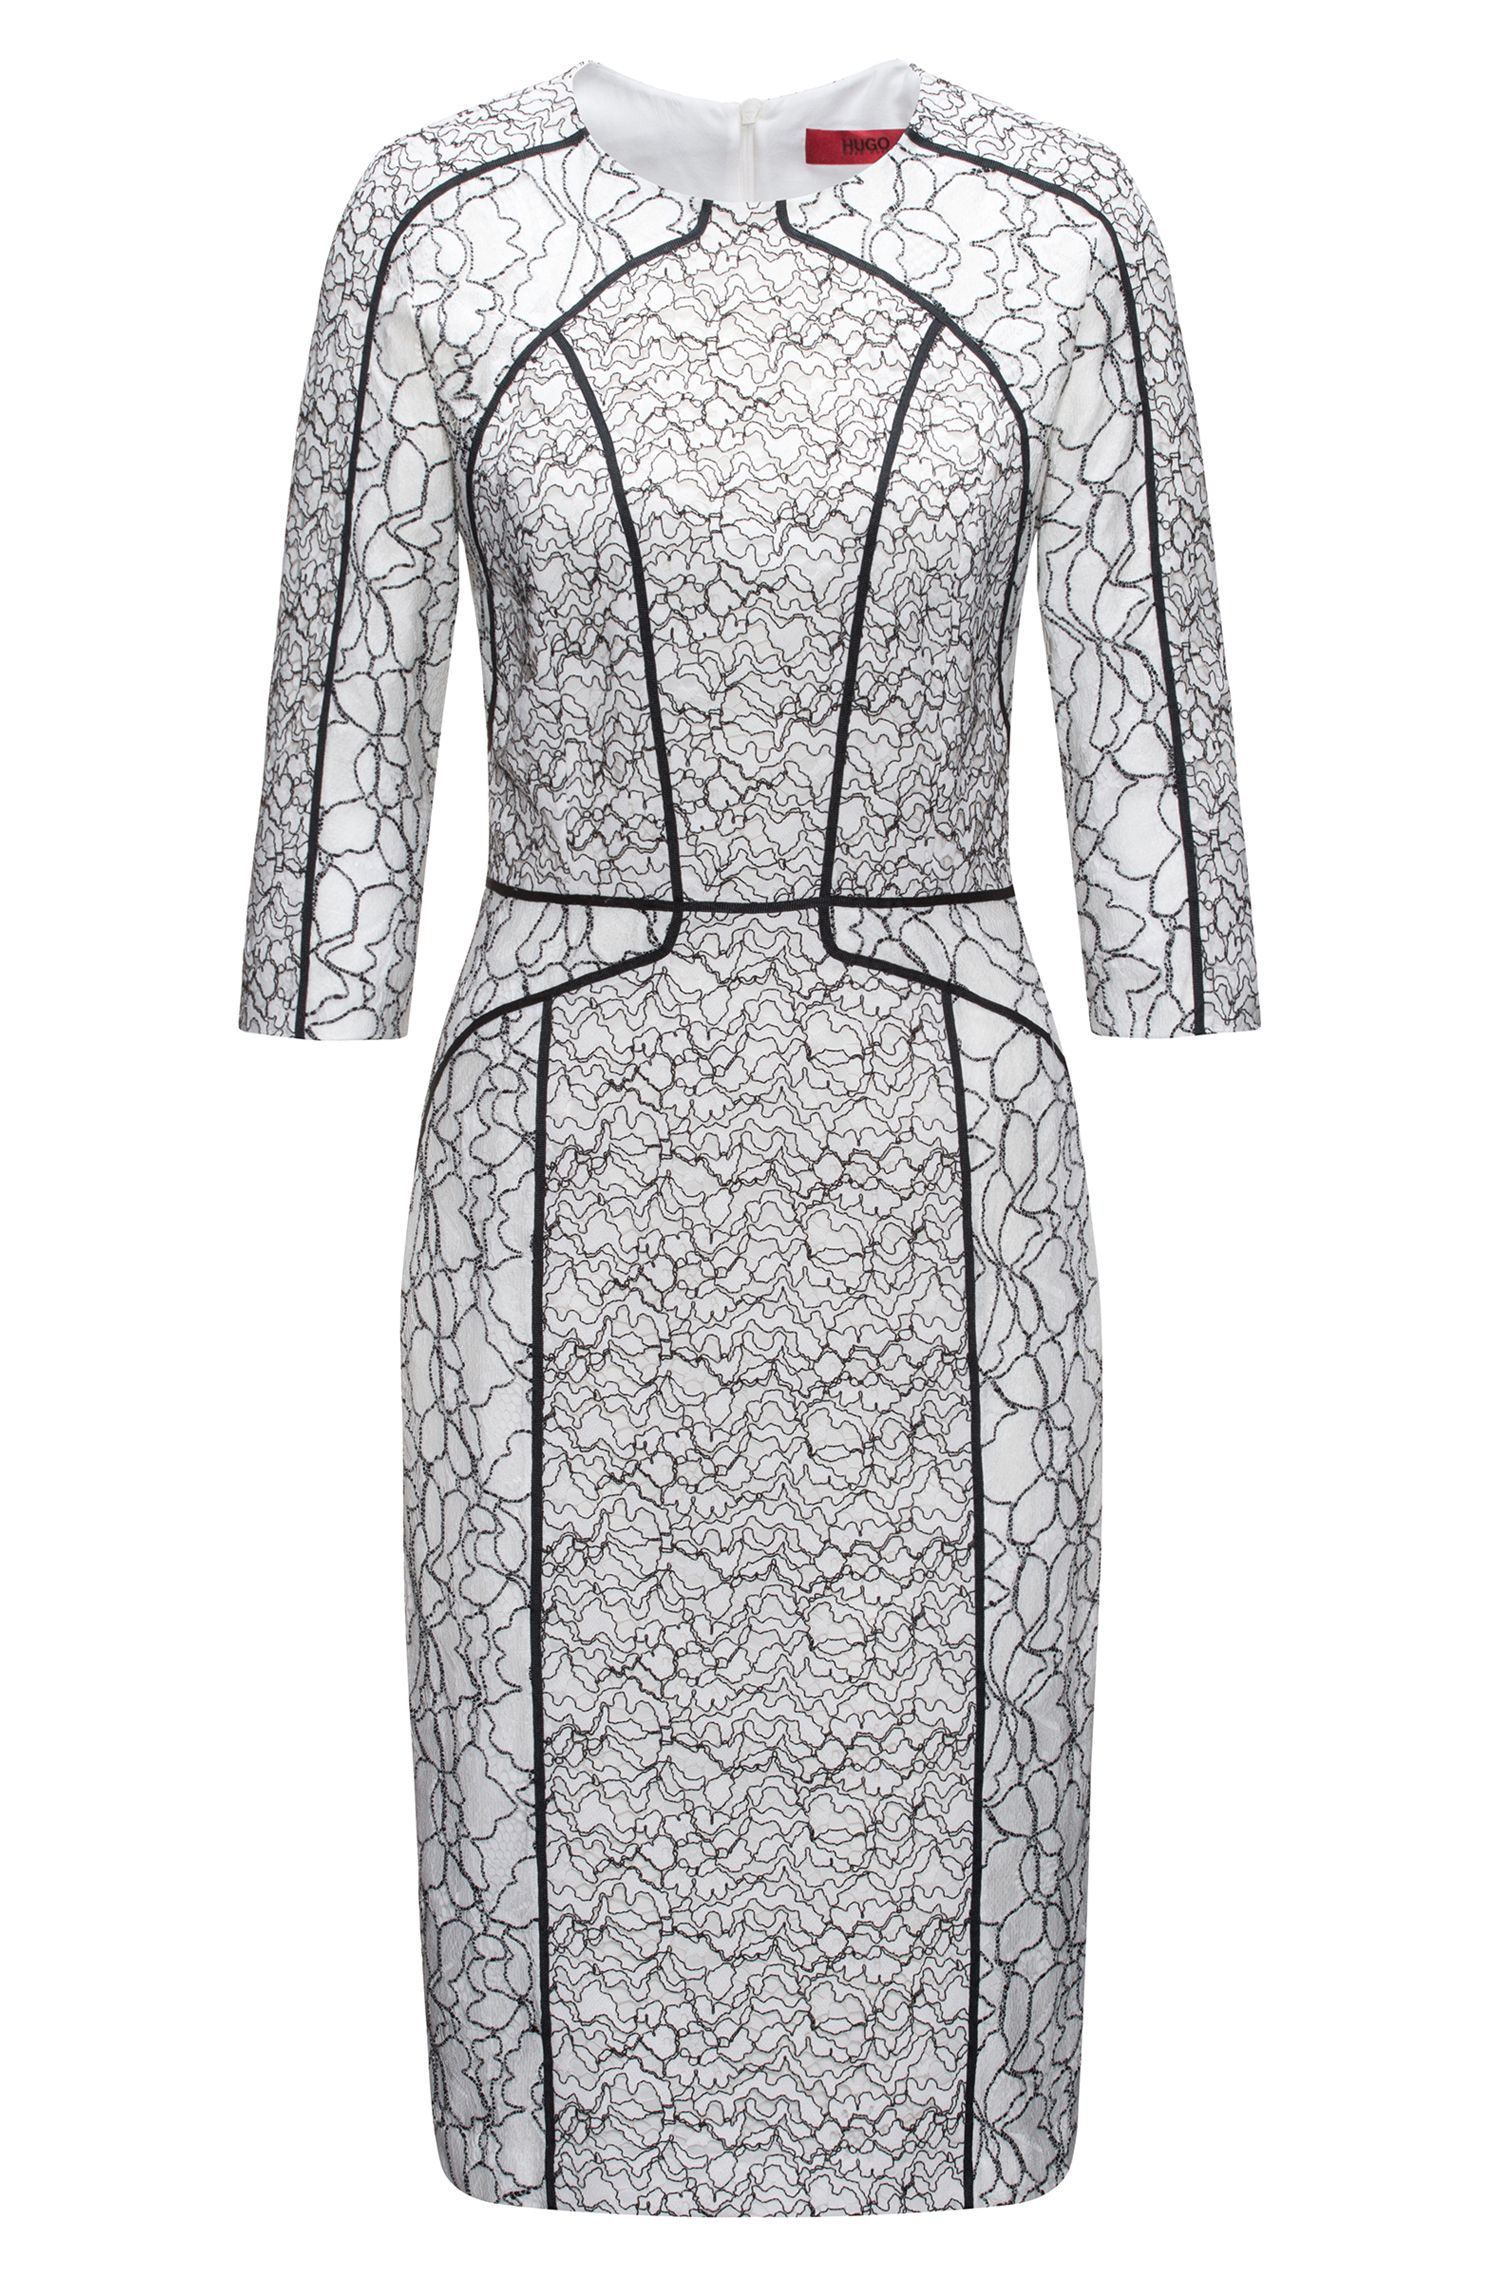 Patched Lace Dress | Karali